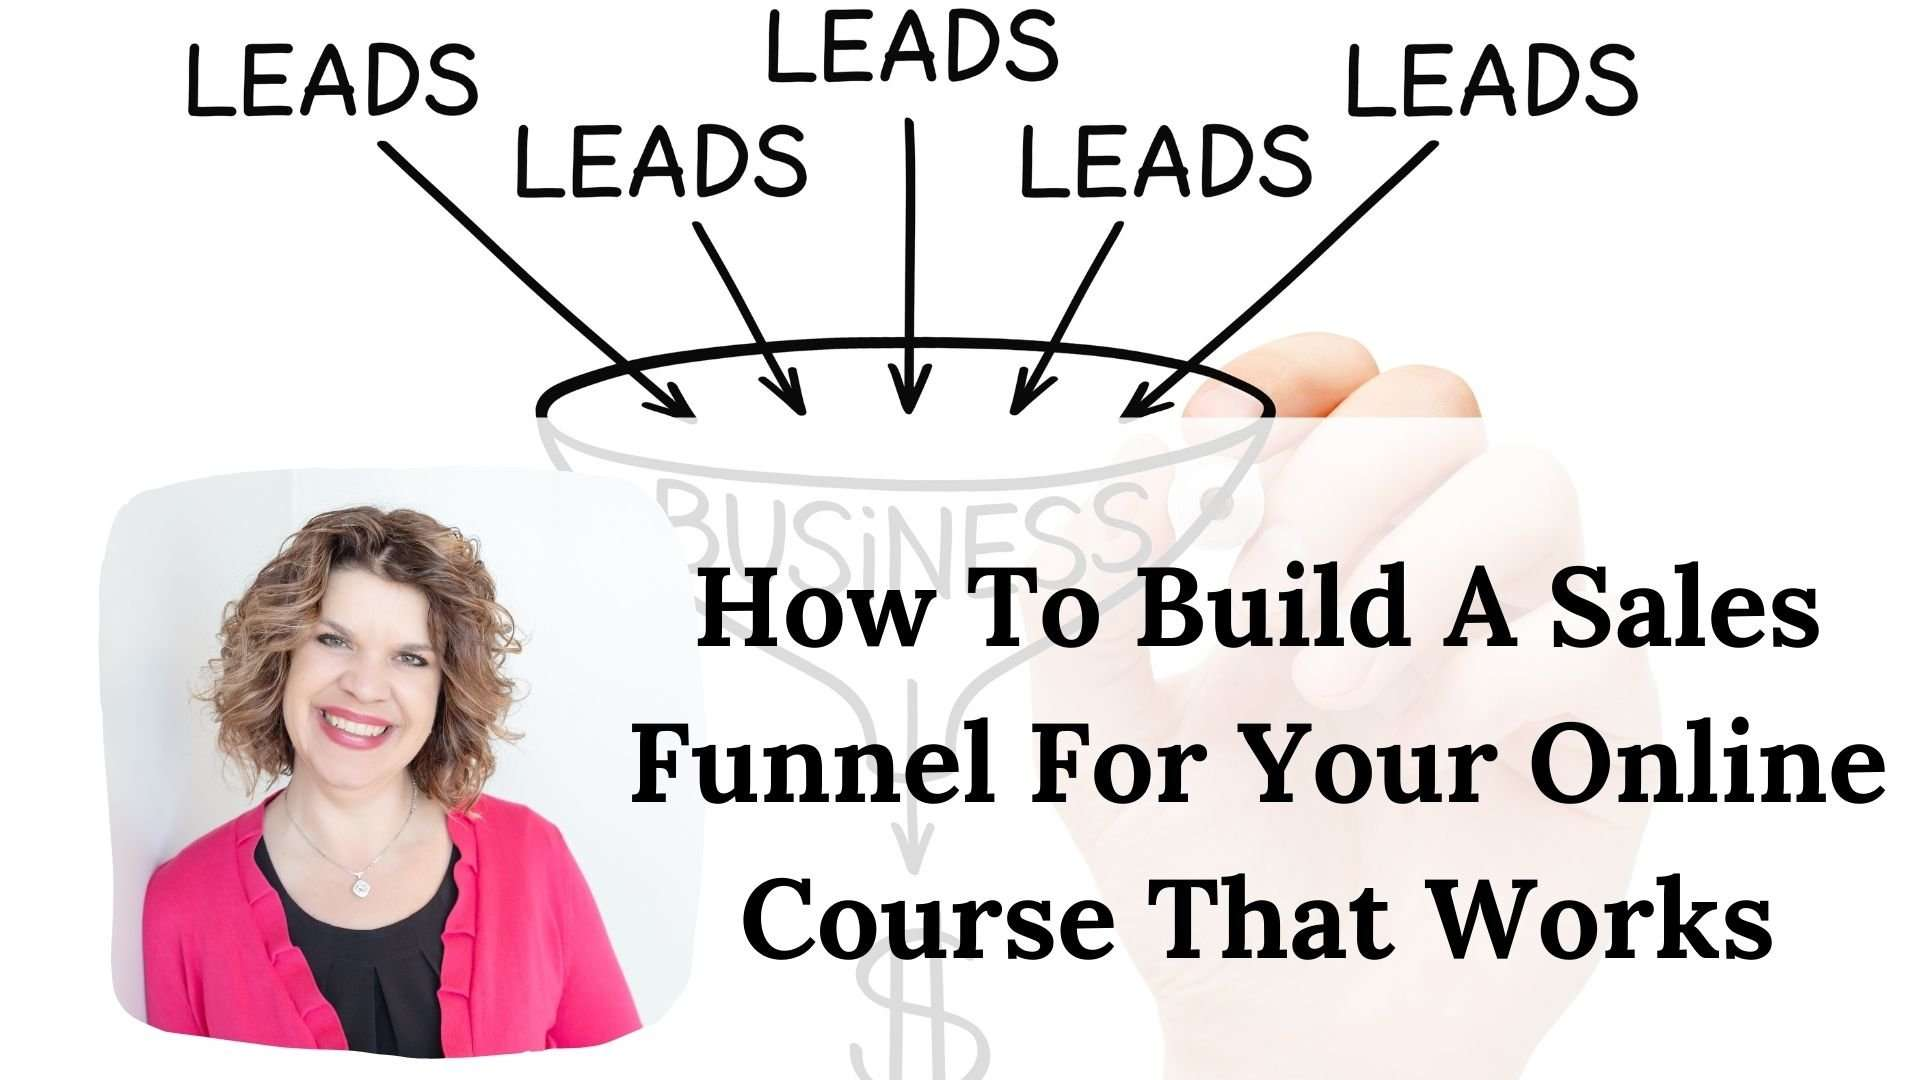 ACCTV#10 – How To Build A Sales Funnel For Your Online Course